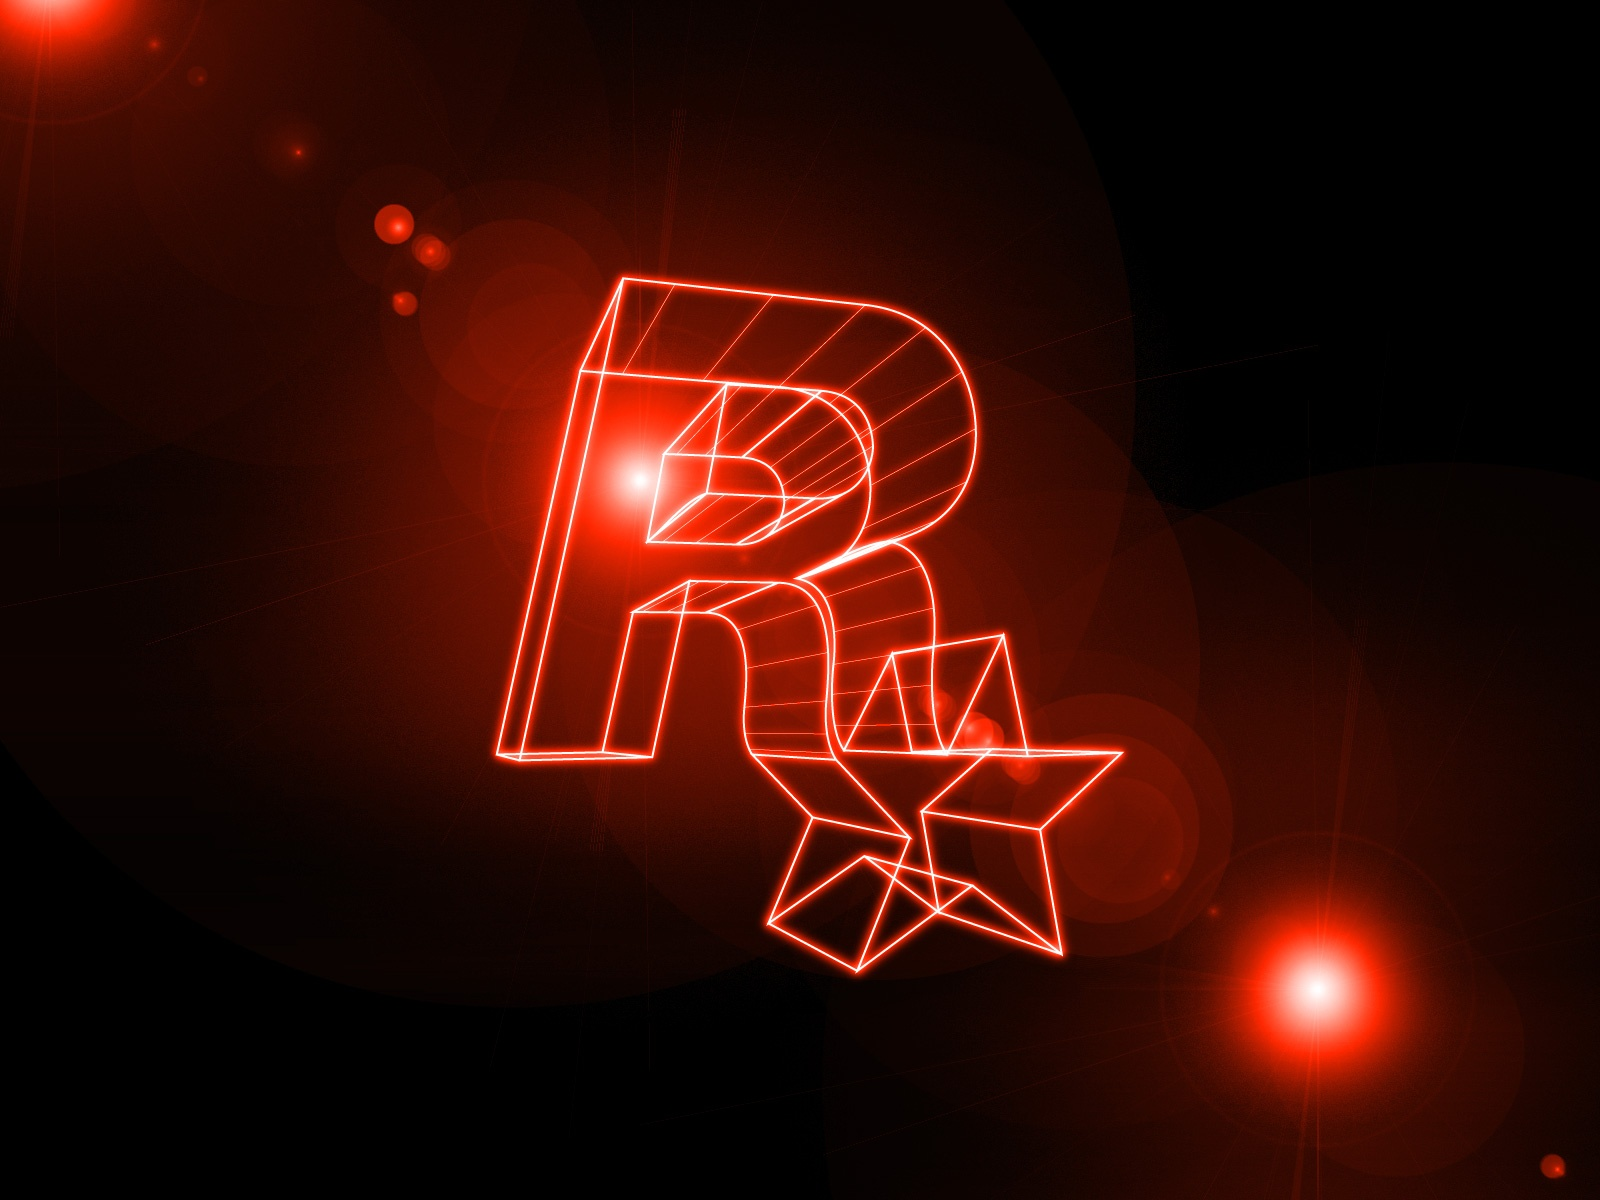 Rockstar Logo Wallpaper 1600x1200